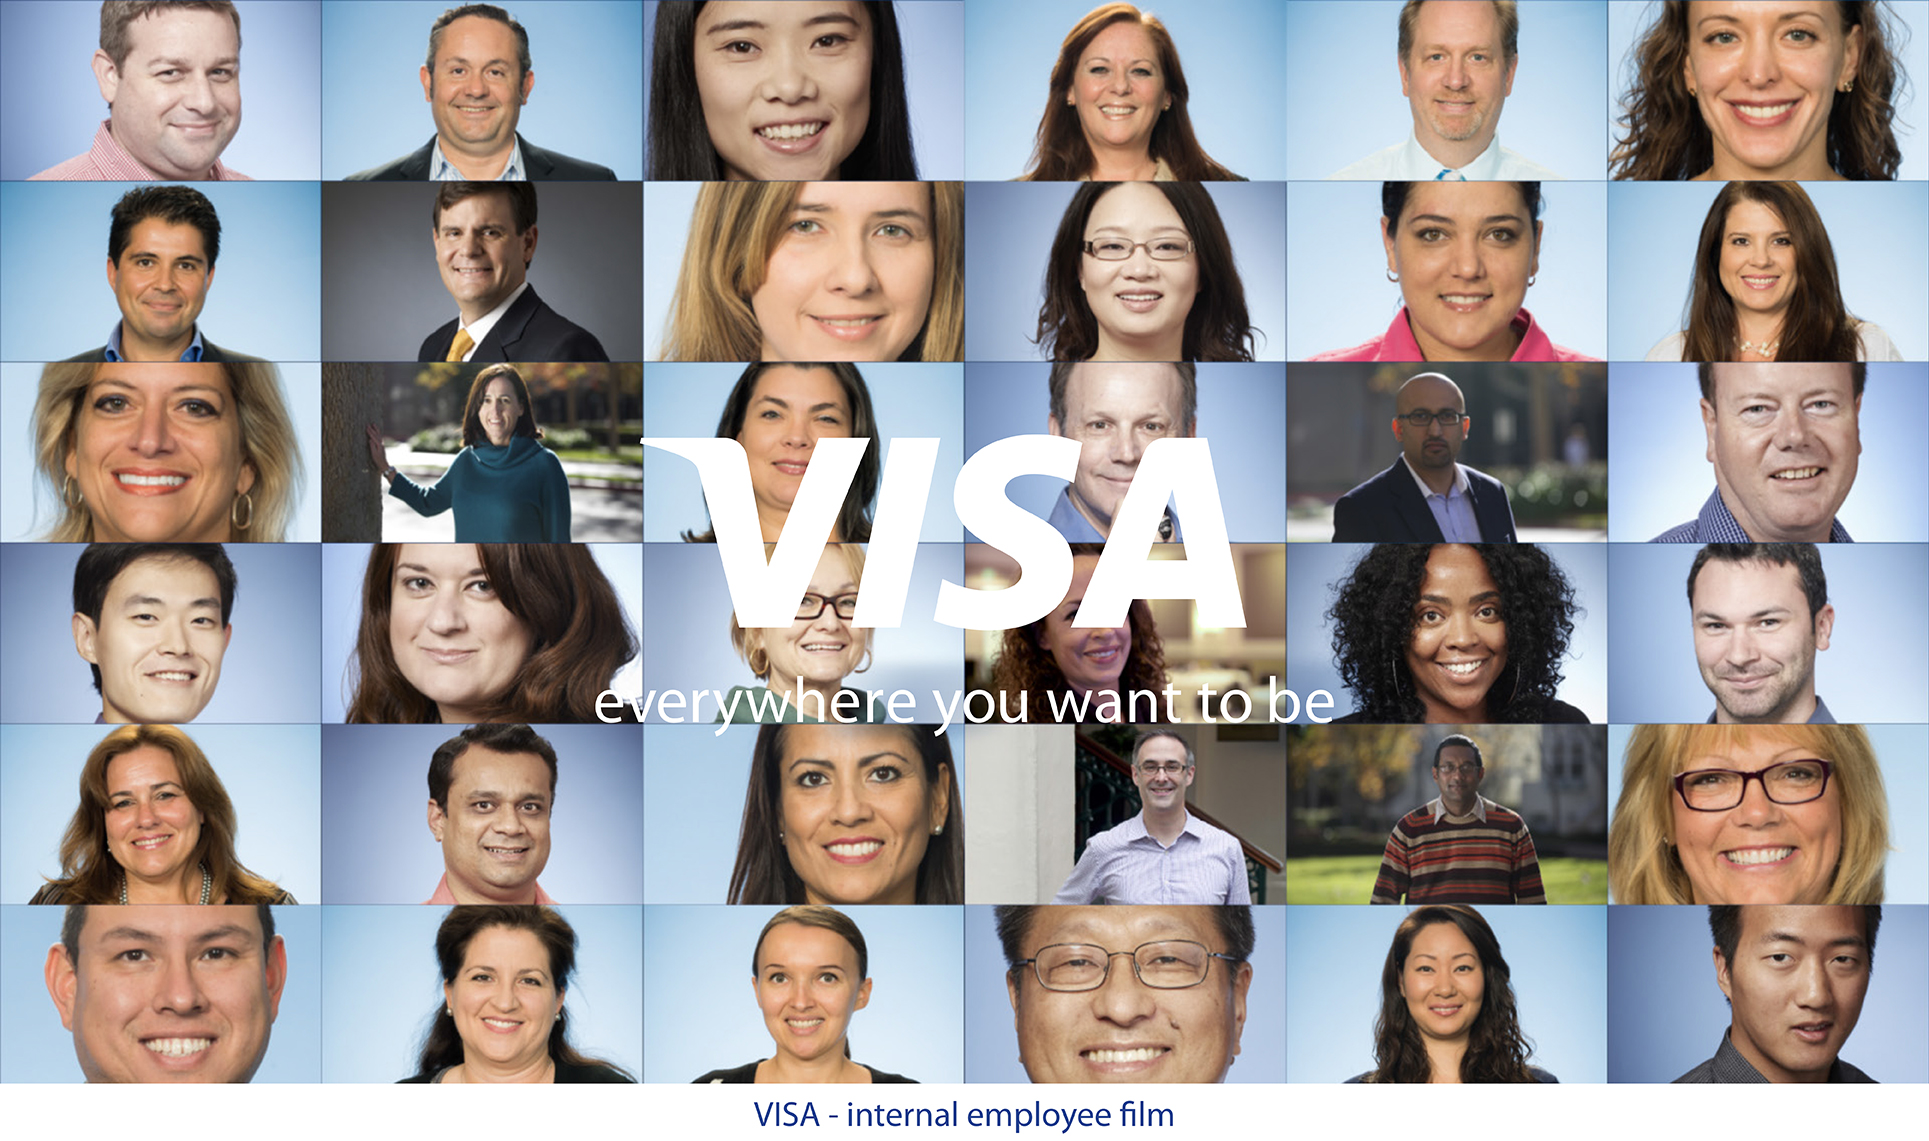 A collage of smiling portraits and a white Visa logo overlaid in the center.